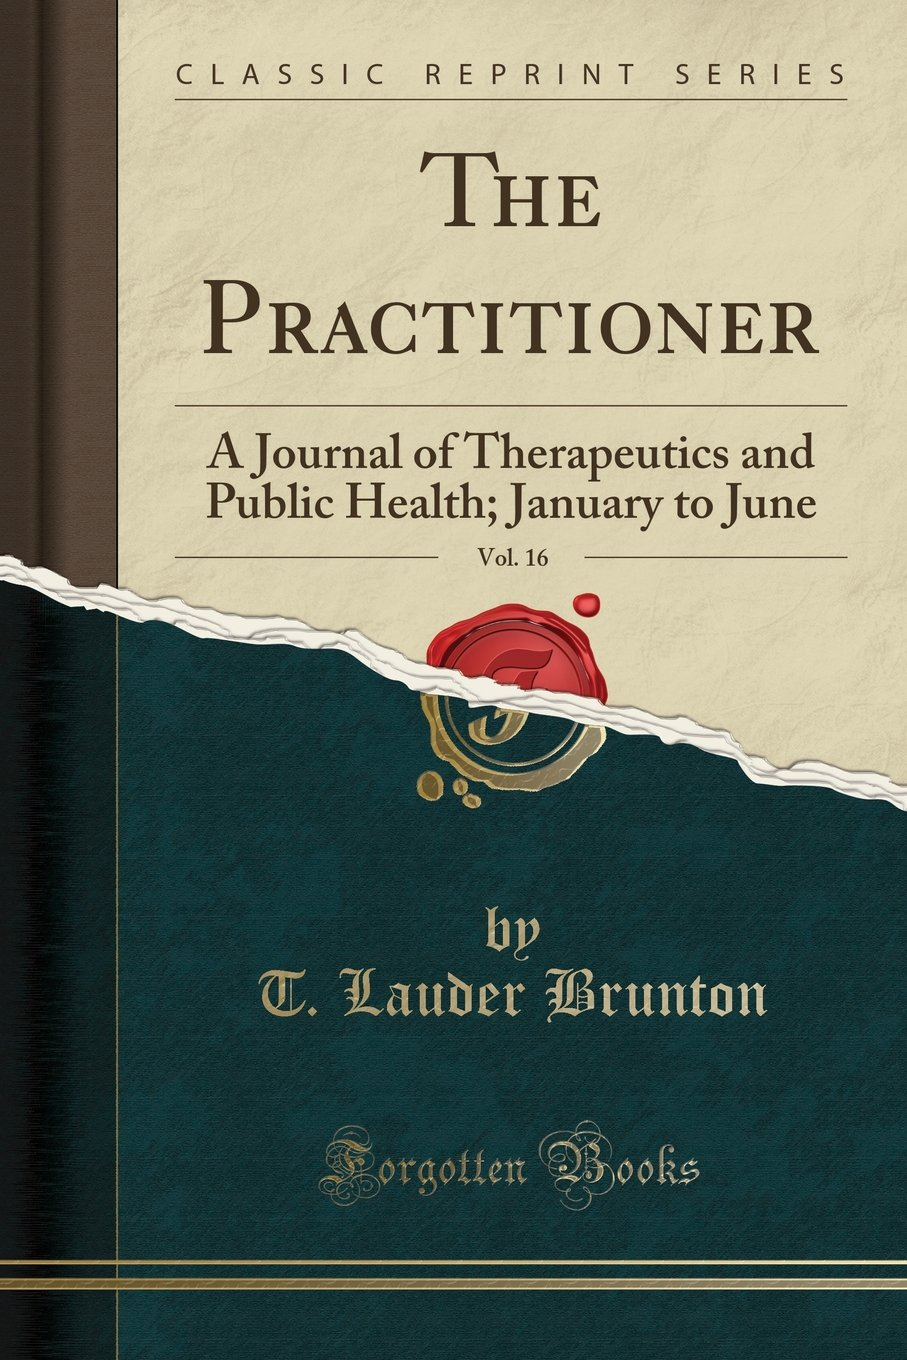 The Practitioner, Vol. 16: A Journal of Therapeutics and Public Health; January to June (Classic Reprint) pdf epub